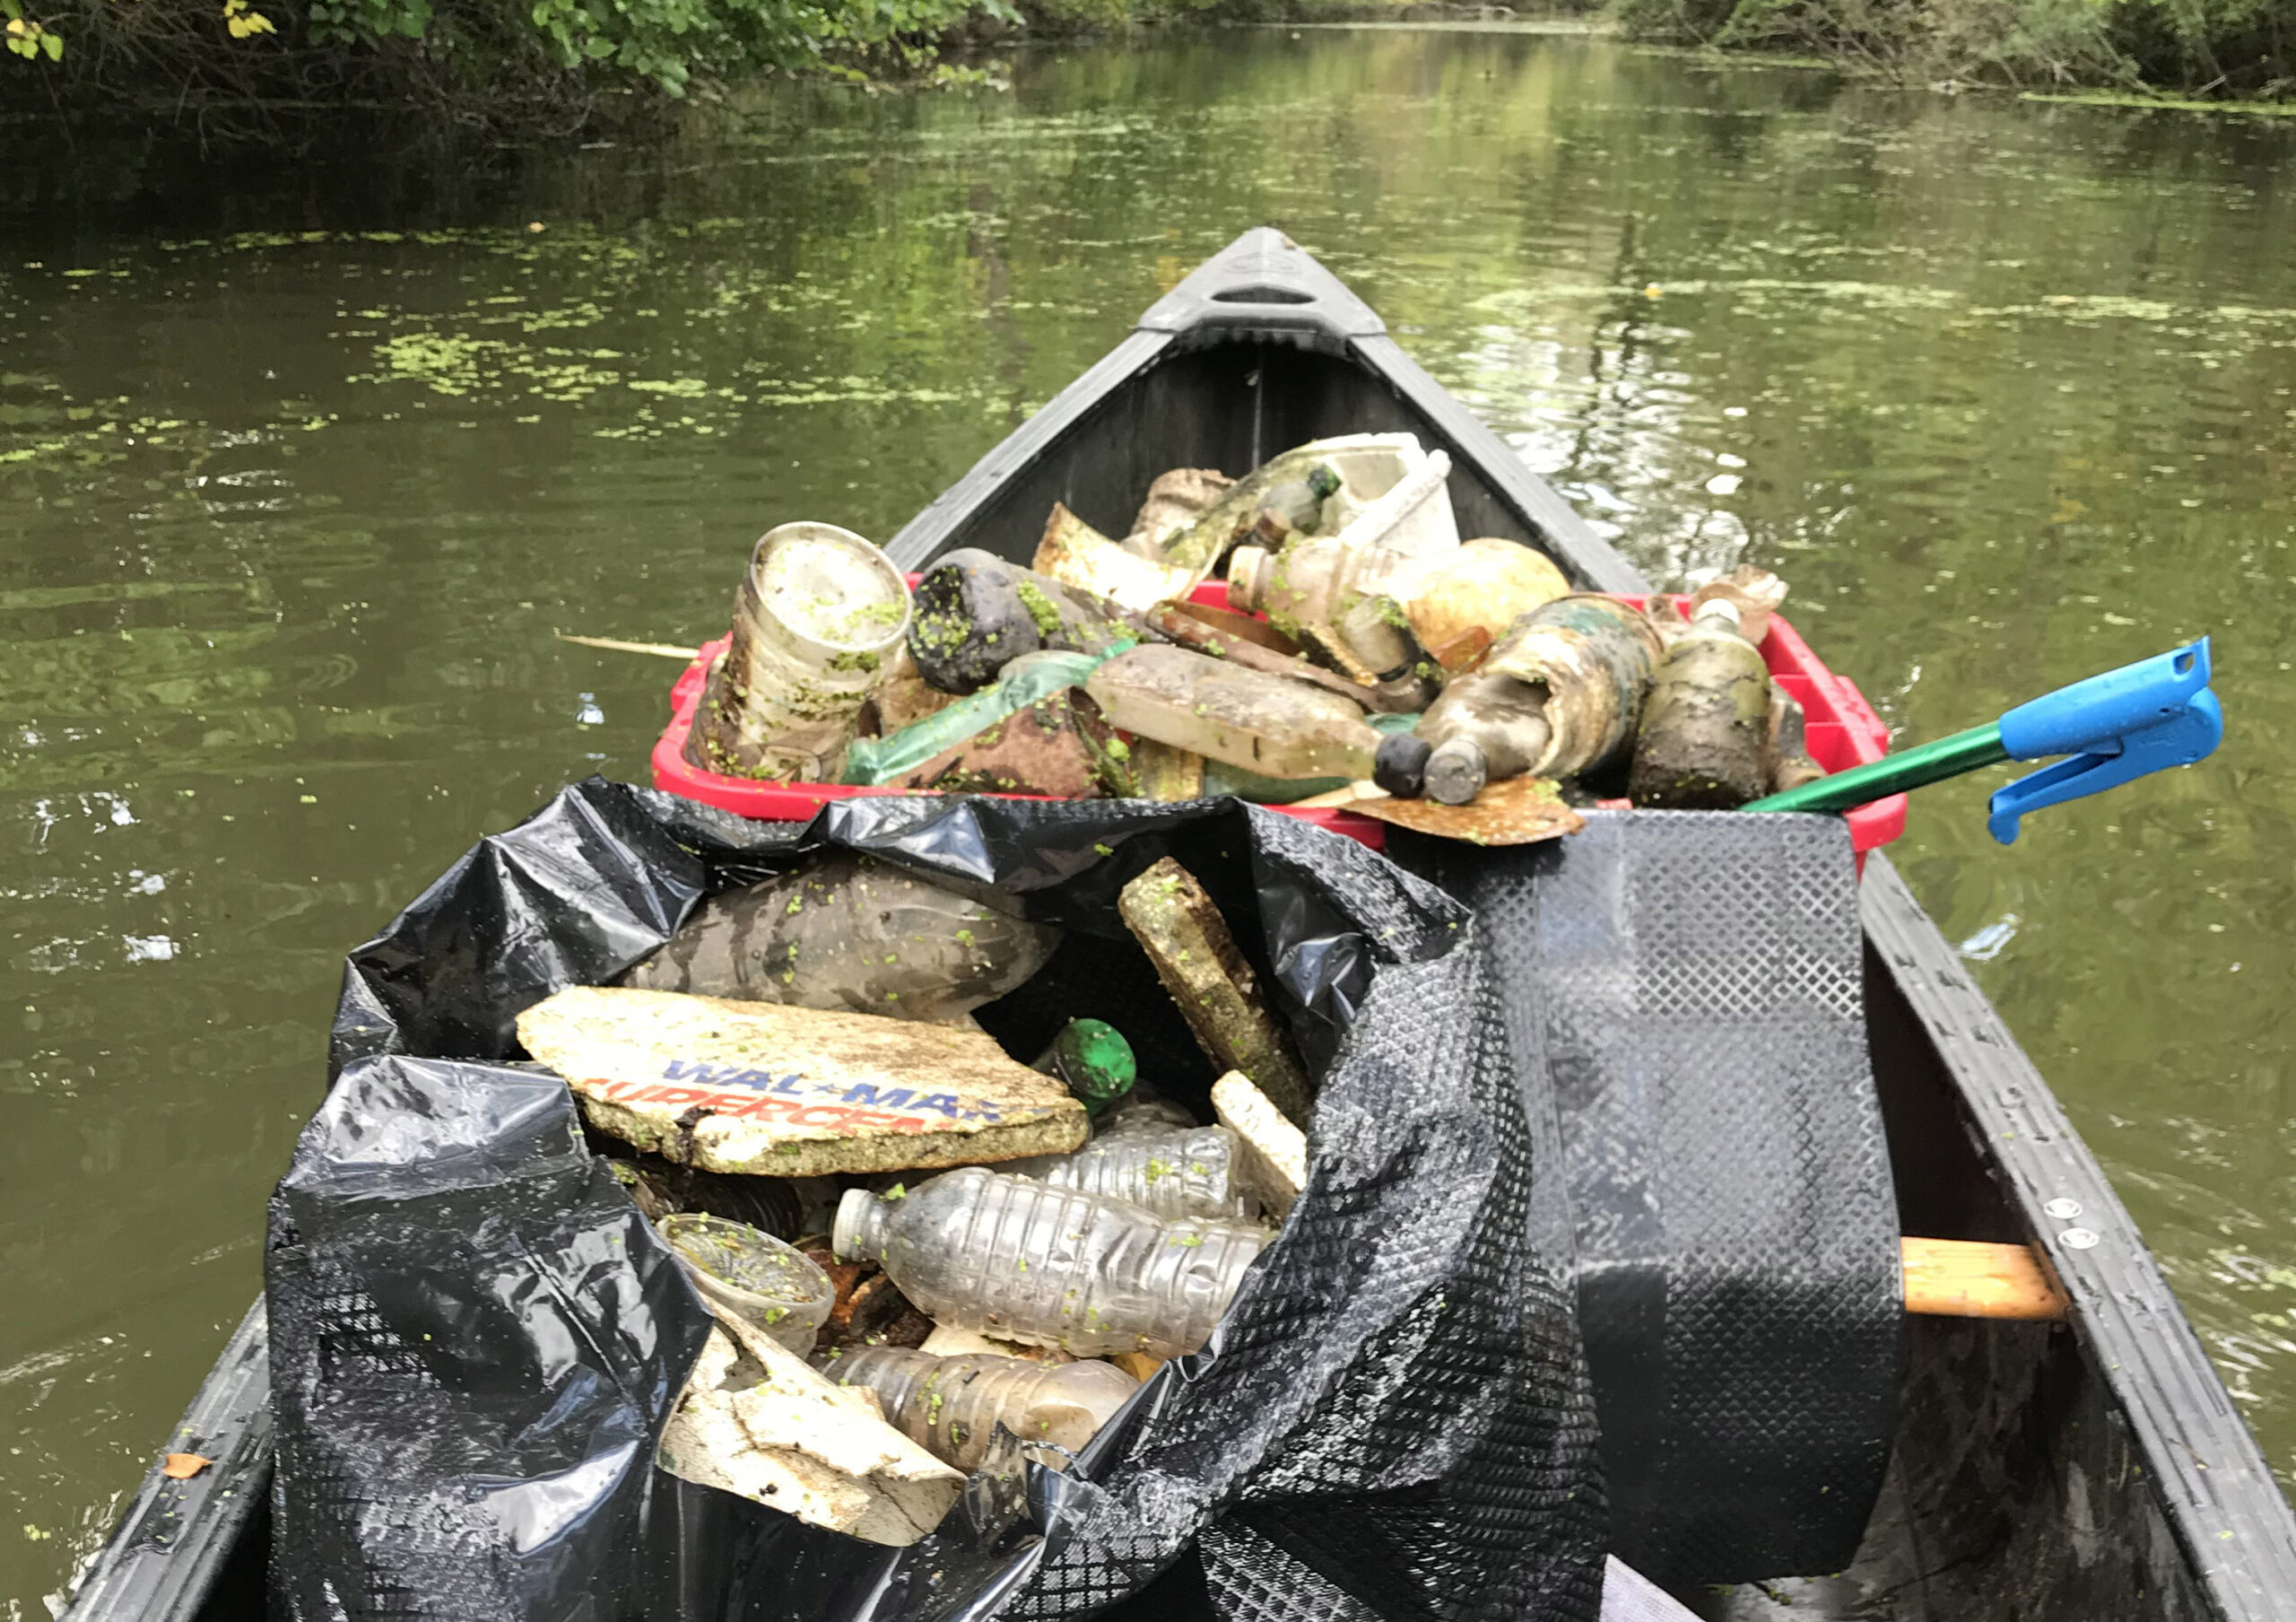 Ecorse River Clean Up looking at garbage collection from a canoe